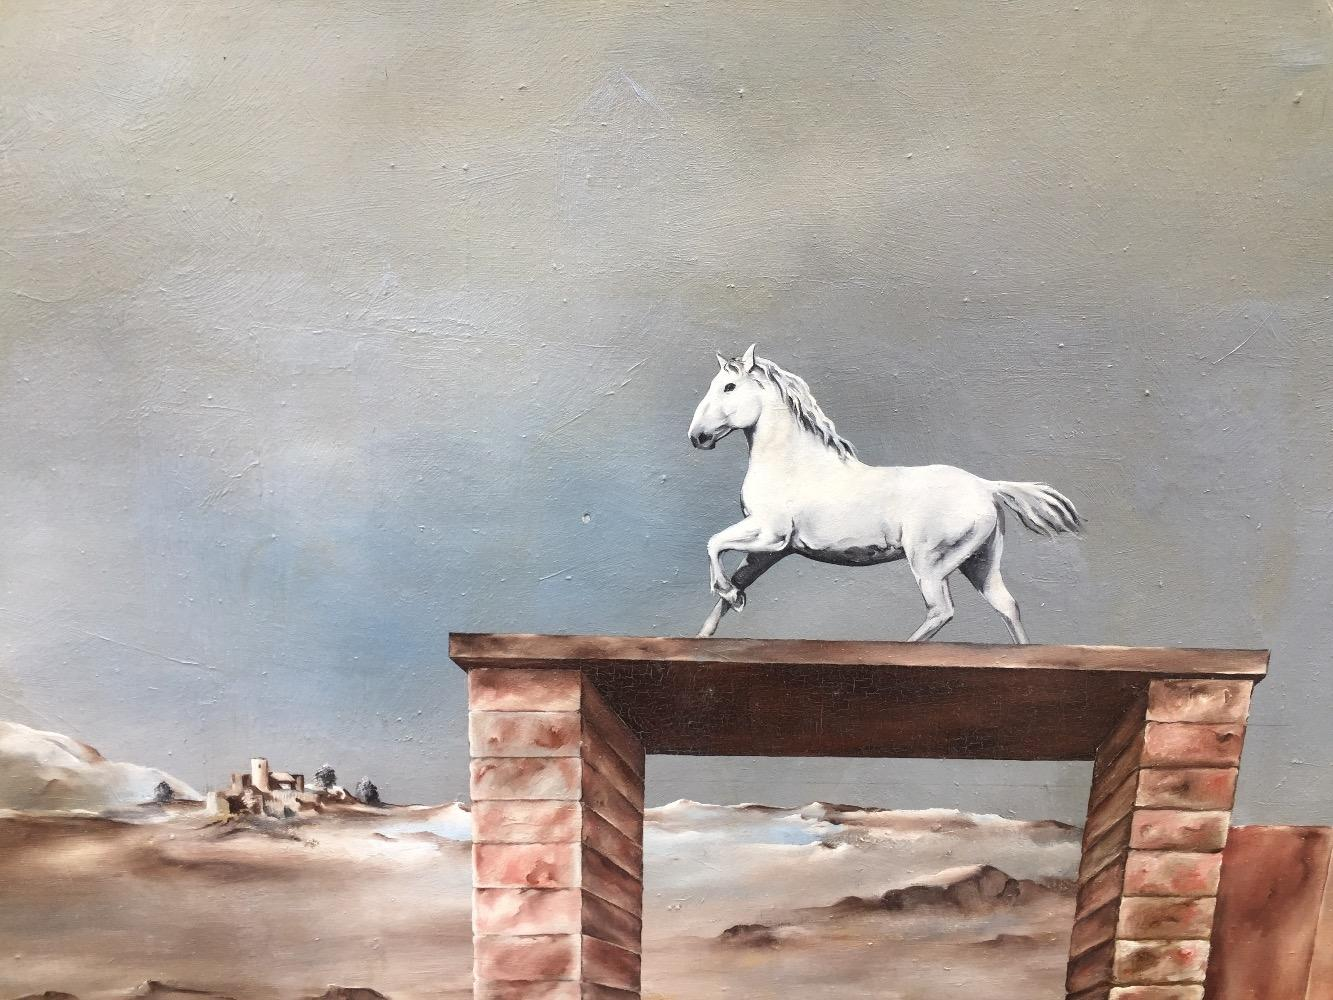 Surreel landscape with a white horse